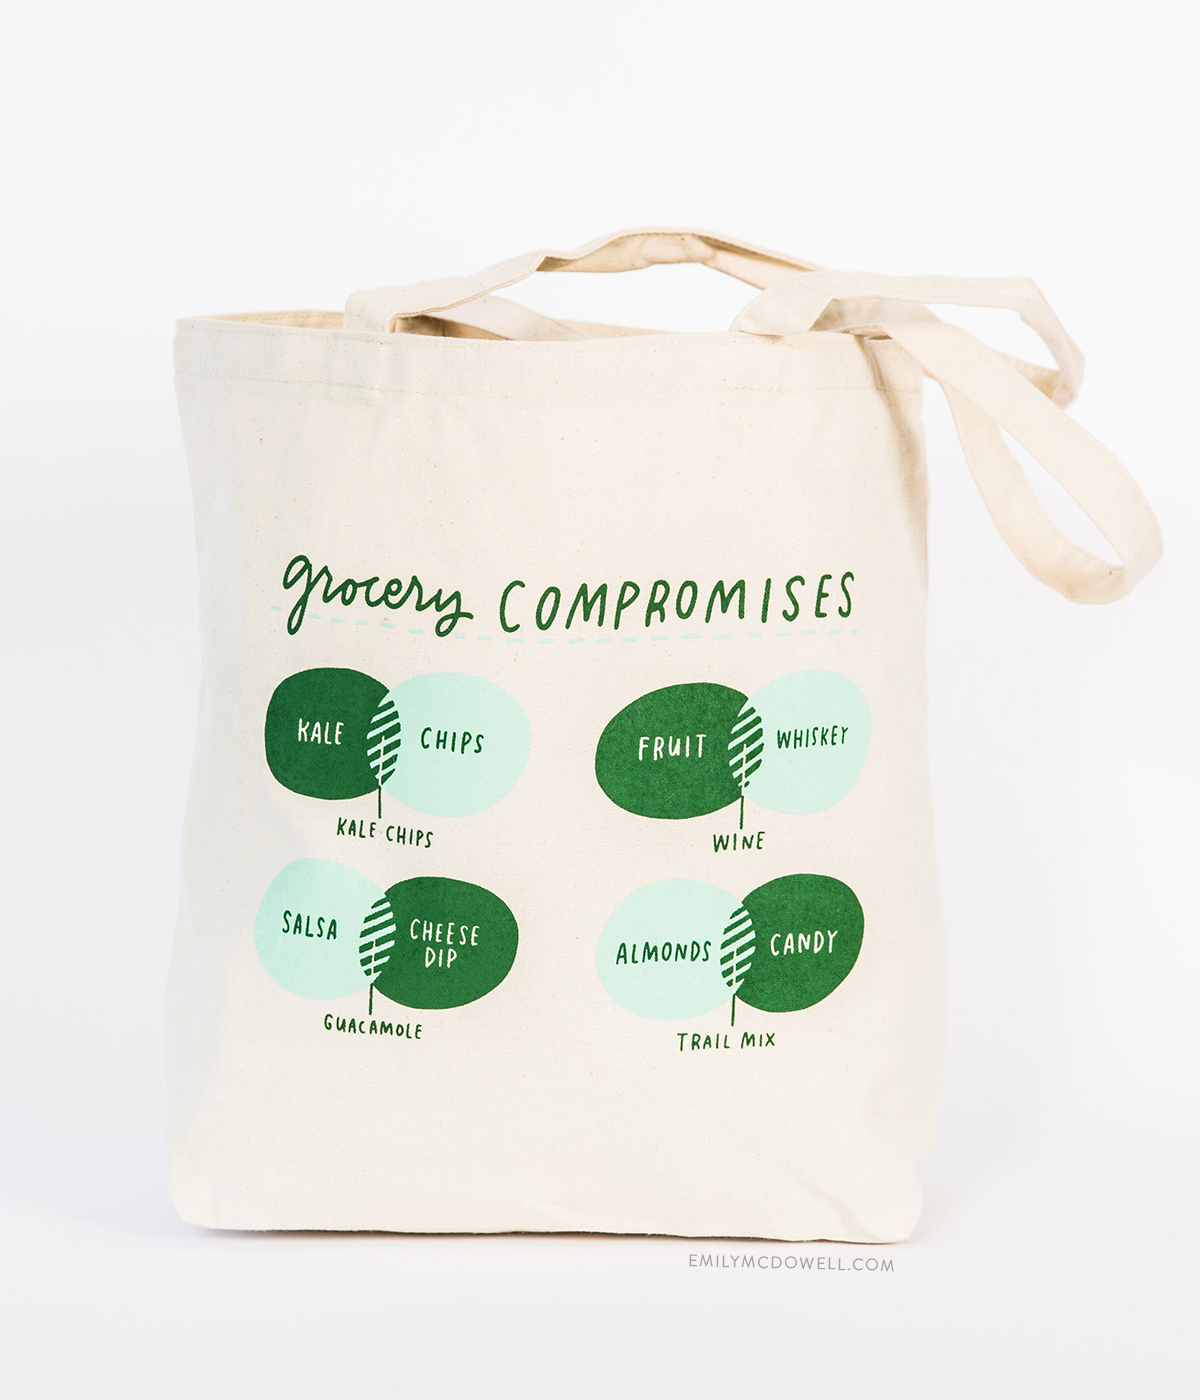 grocerycompromises_white_1200.jpg